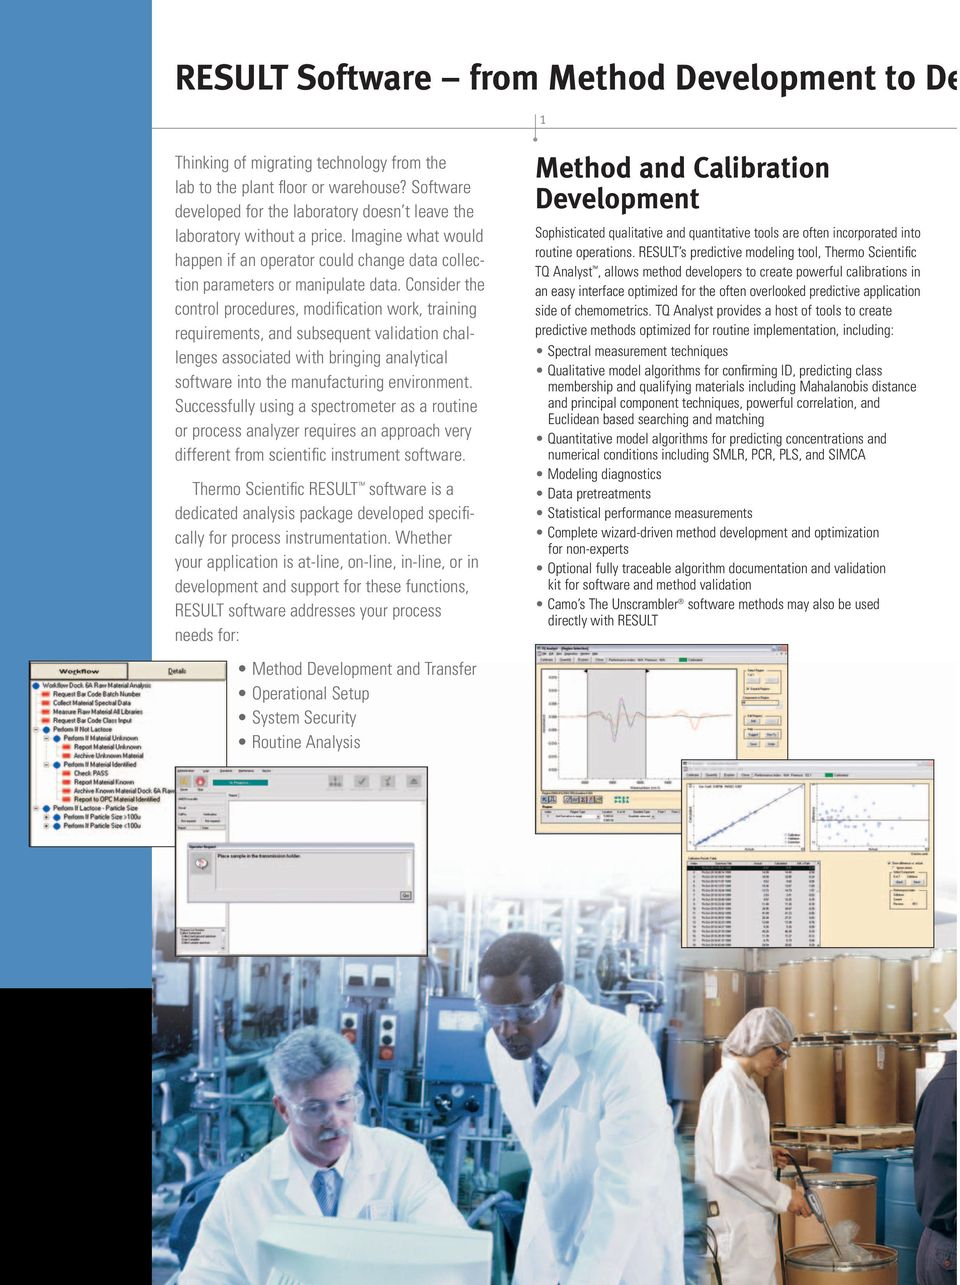 Consider the control procedures, modification work, training requirements, and subsequent validation challenges associated with bringing analytical software into the manufacturing environment.